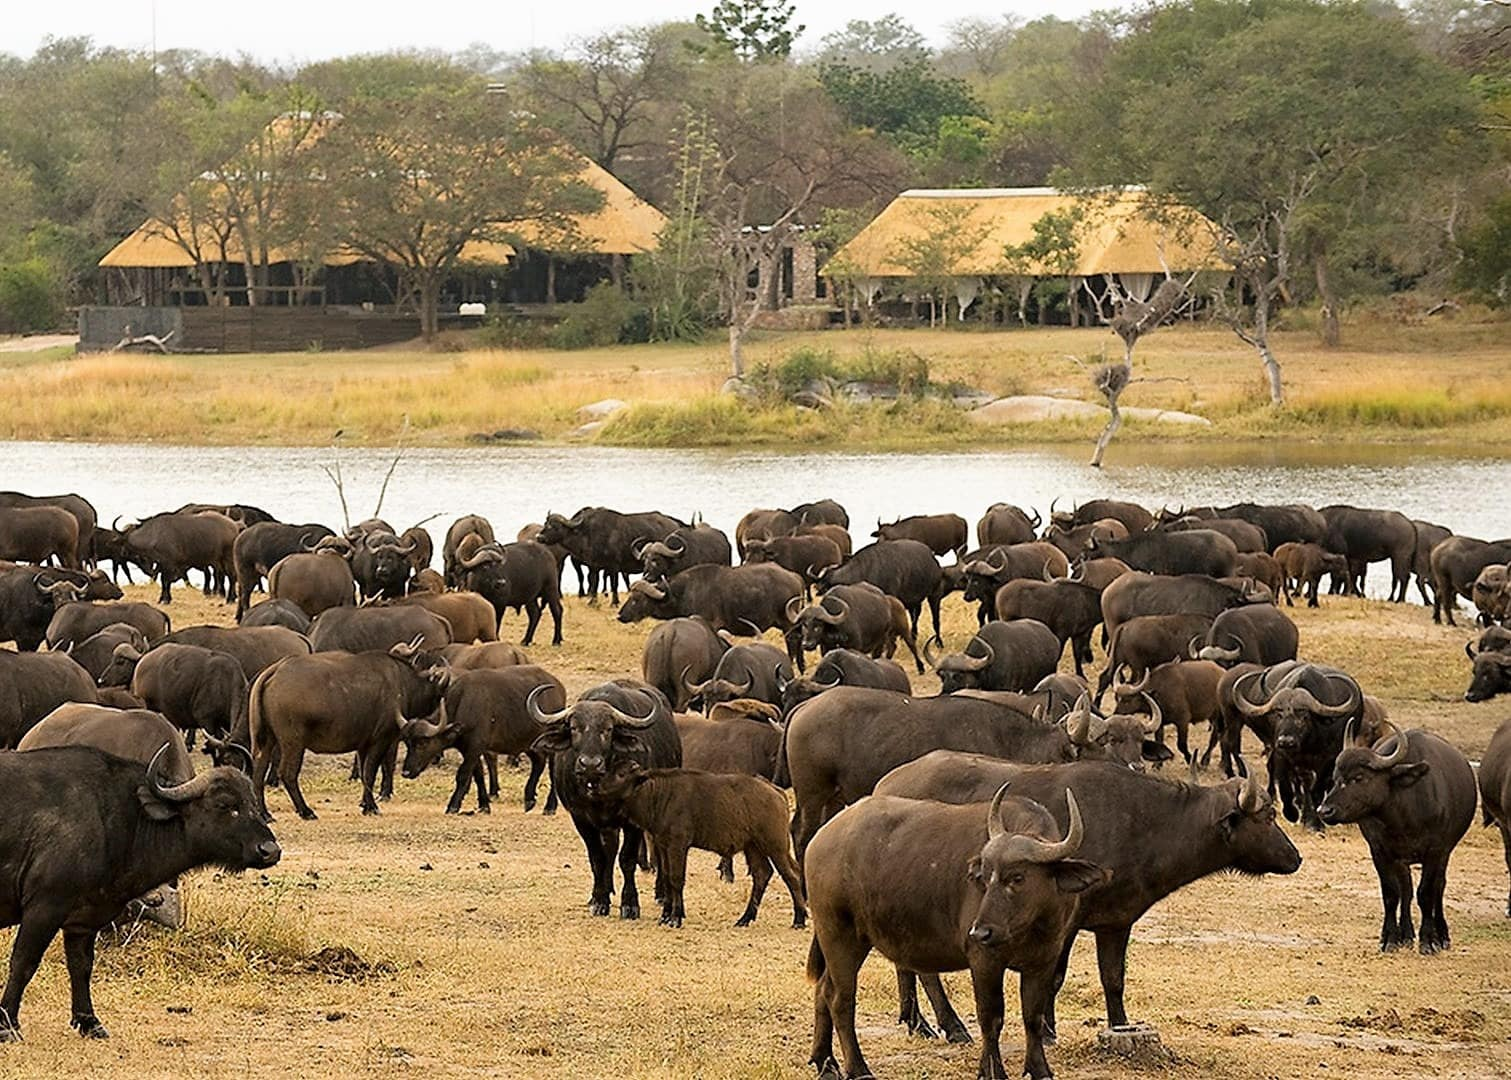 Buffalo mega herd at Chitwa Chitwa